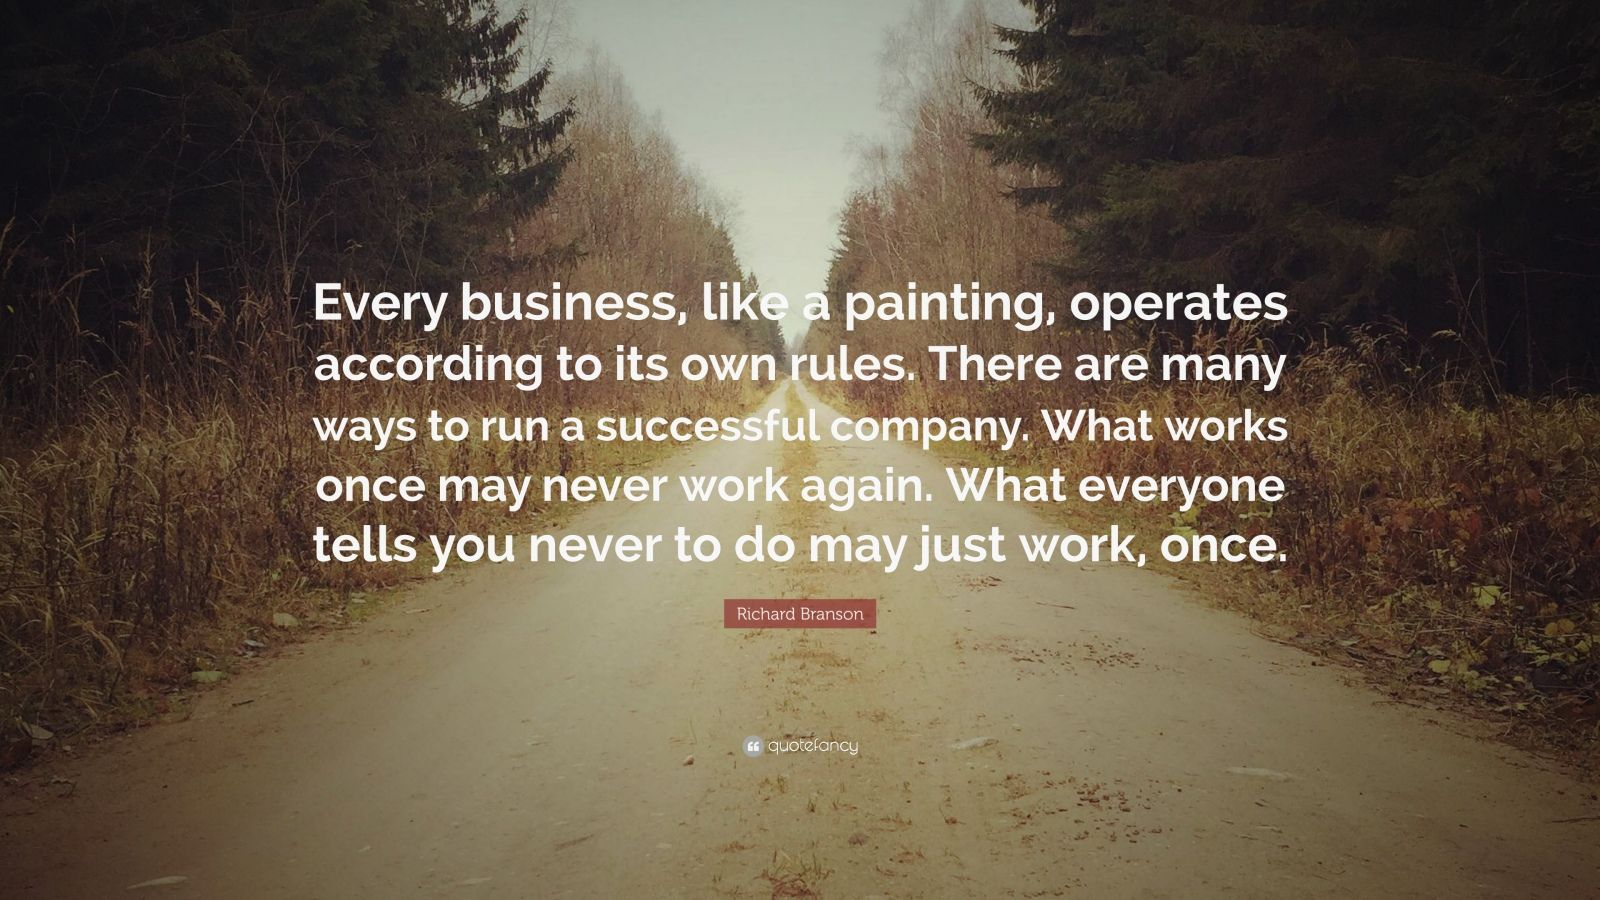 "Richard Branson Quote: ""Every business, like a painting, operates according to its own rules. There are many ways to run a successful company. What works once may never work again. What everyone tells you never to do may just work, once."""